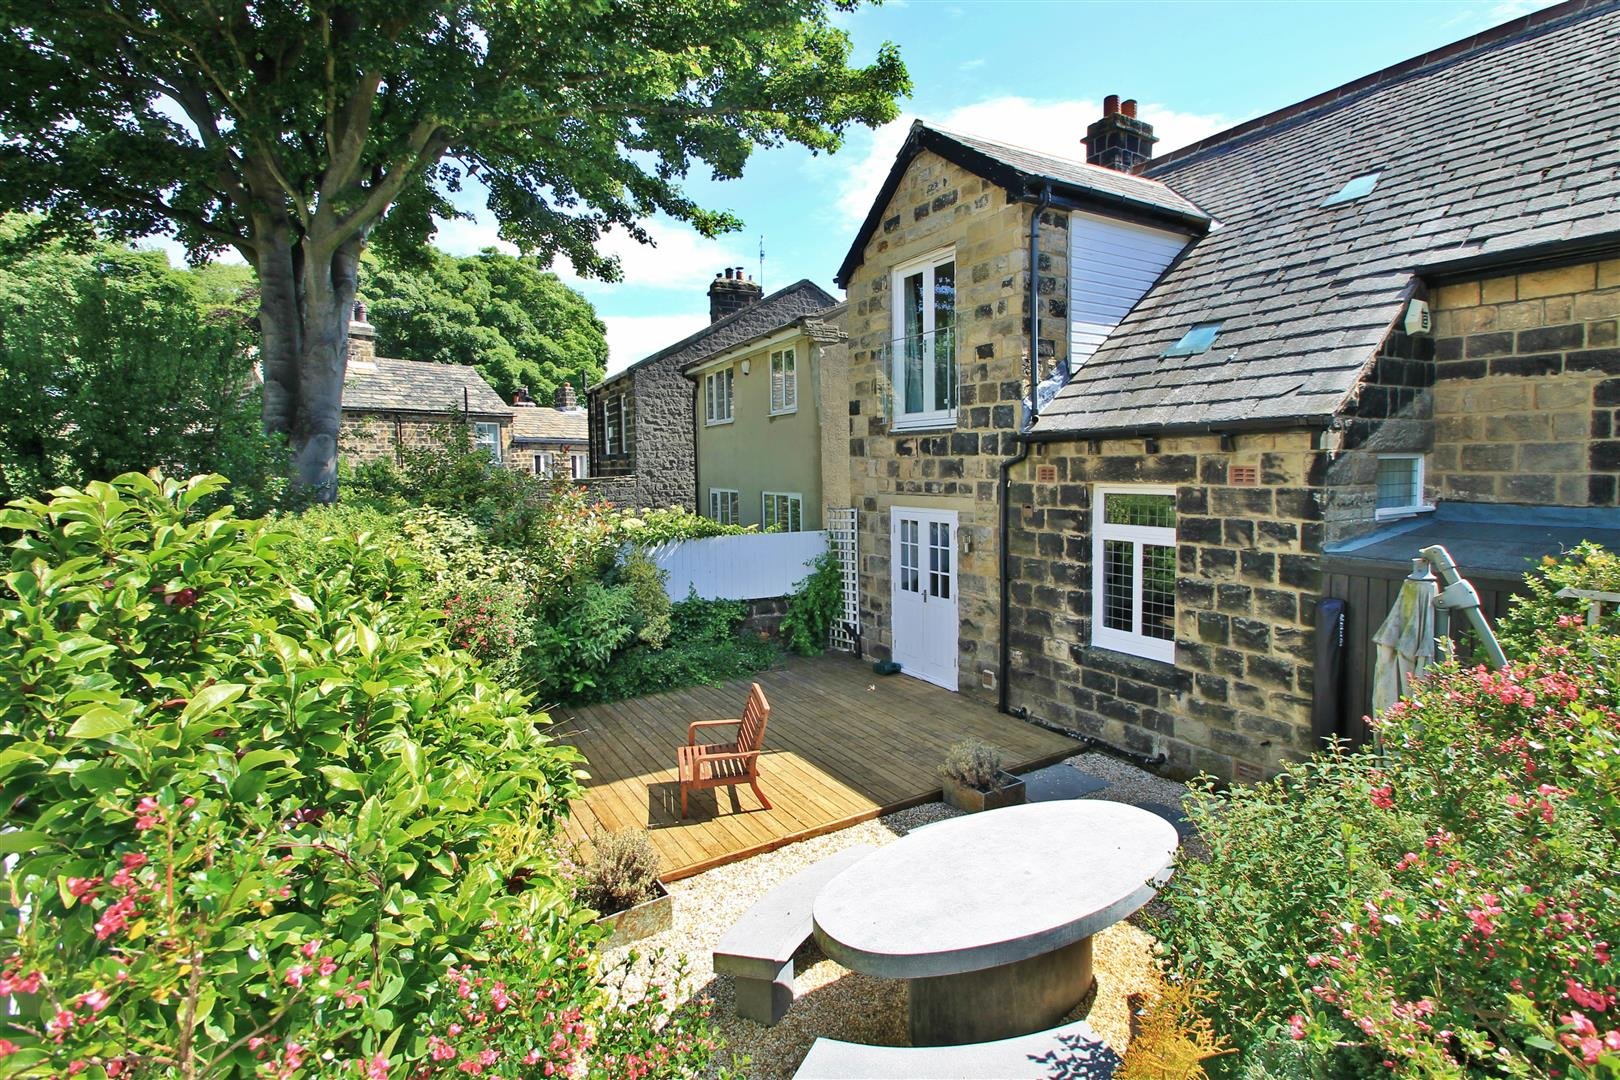 Derry Hill, Ilkley, LS29 6NF